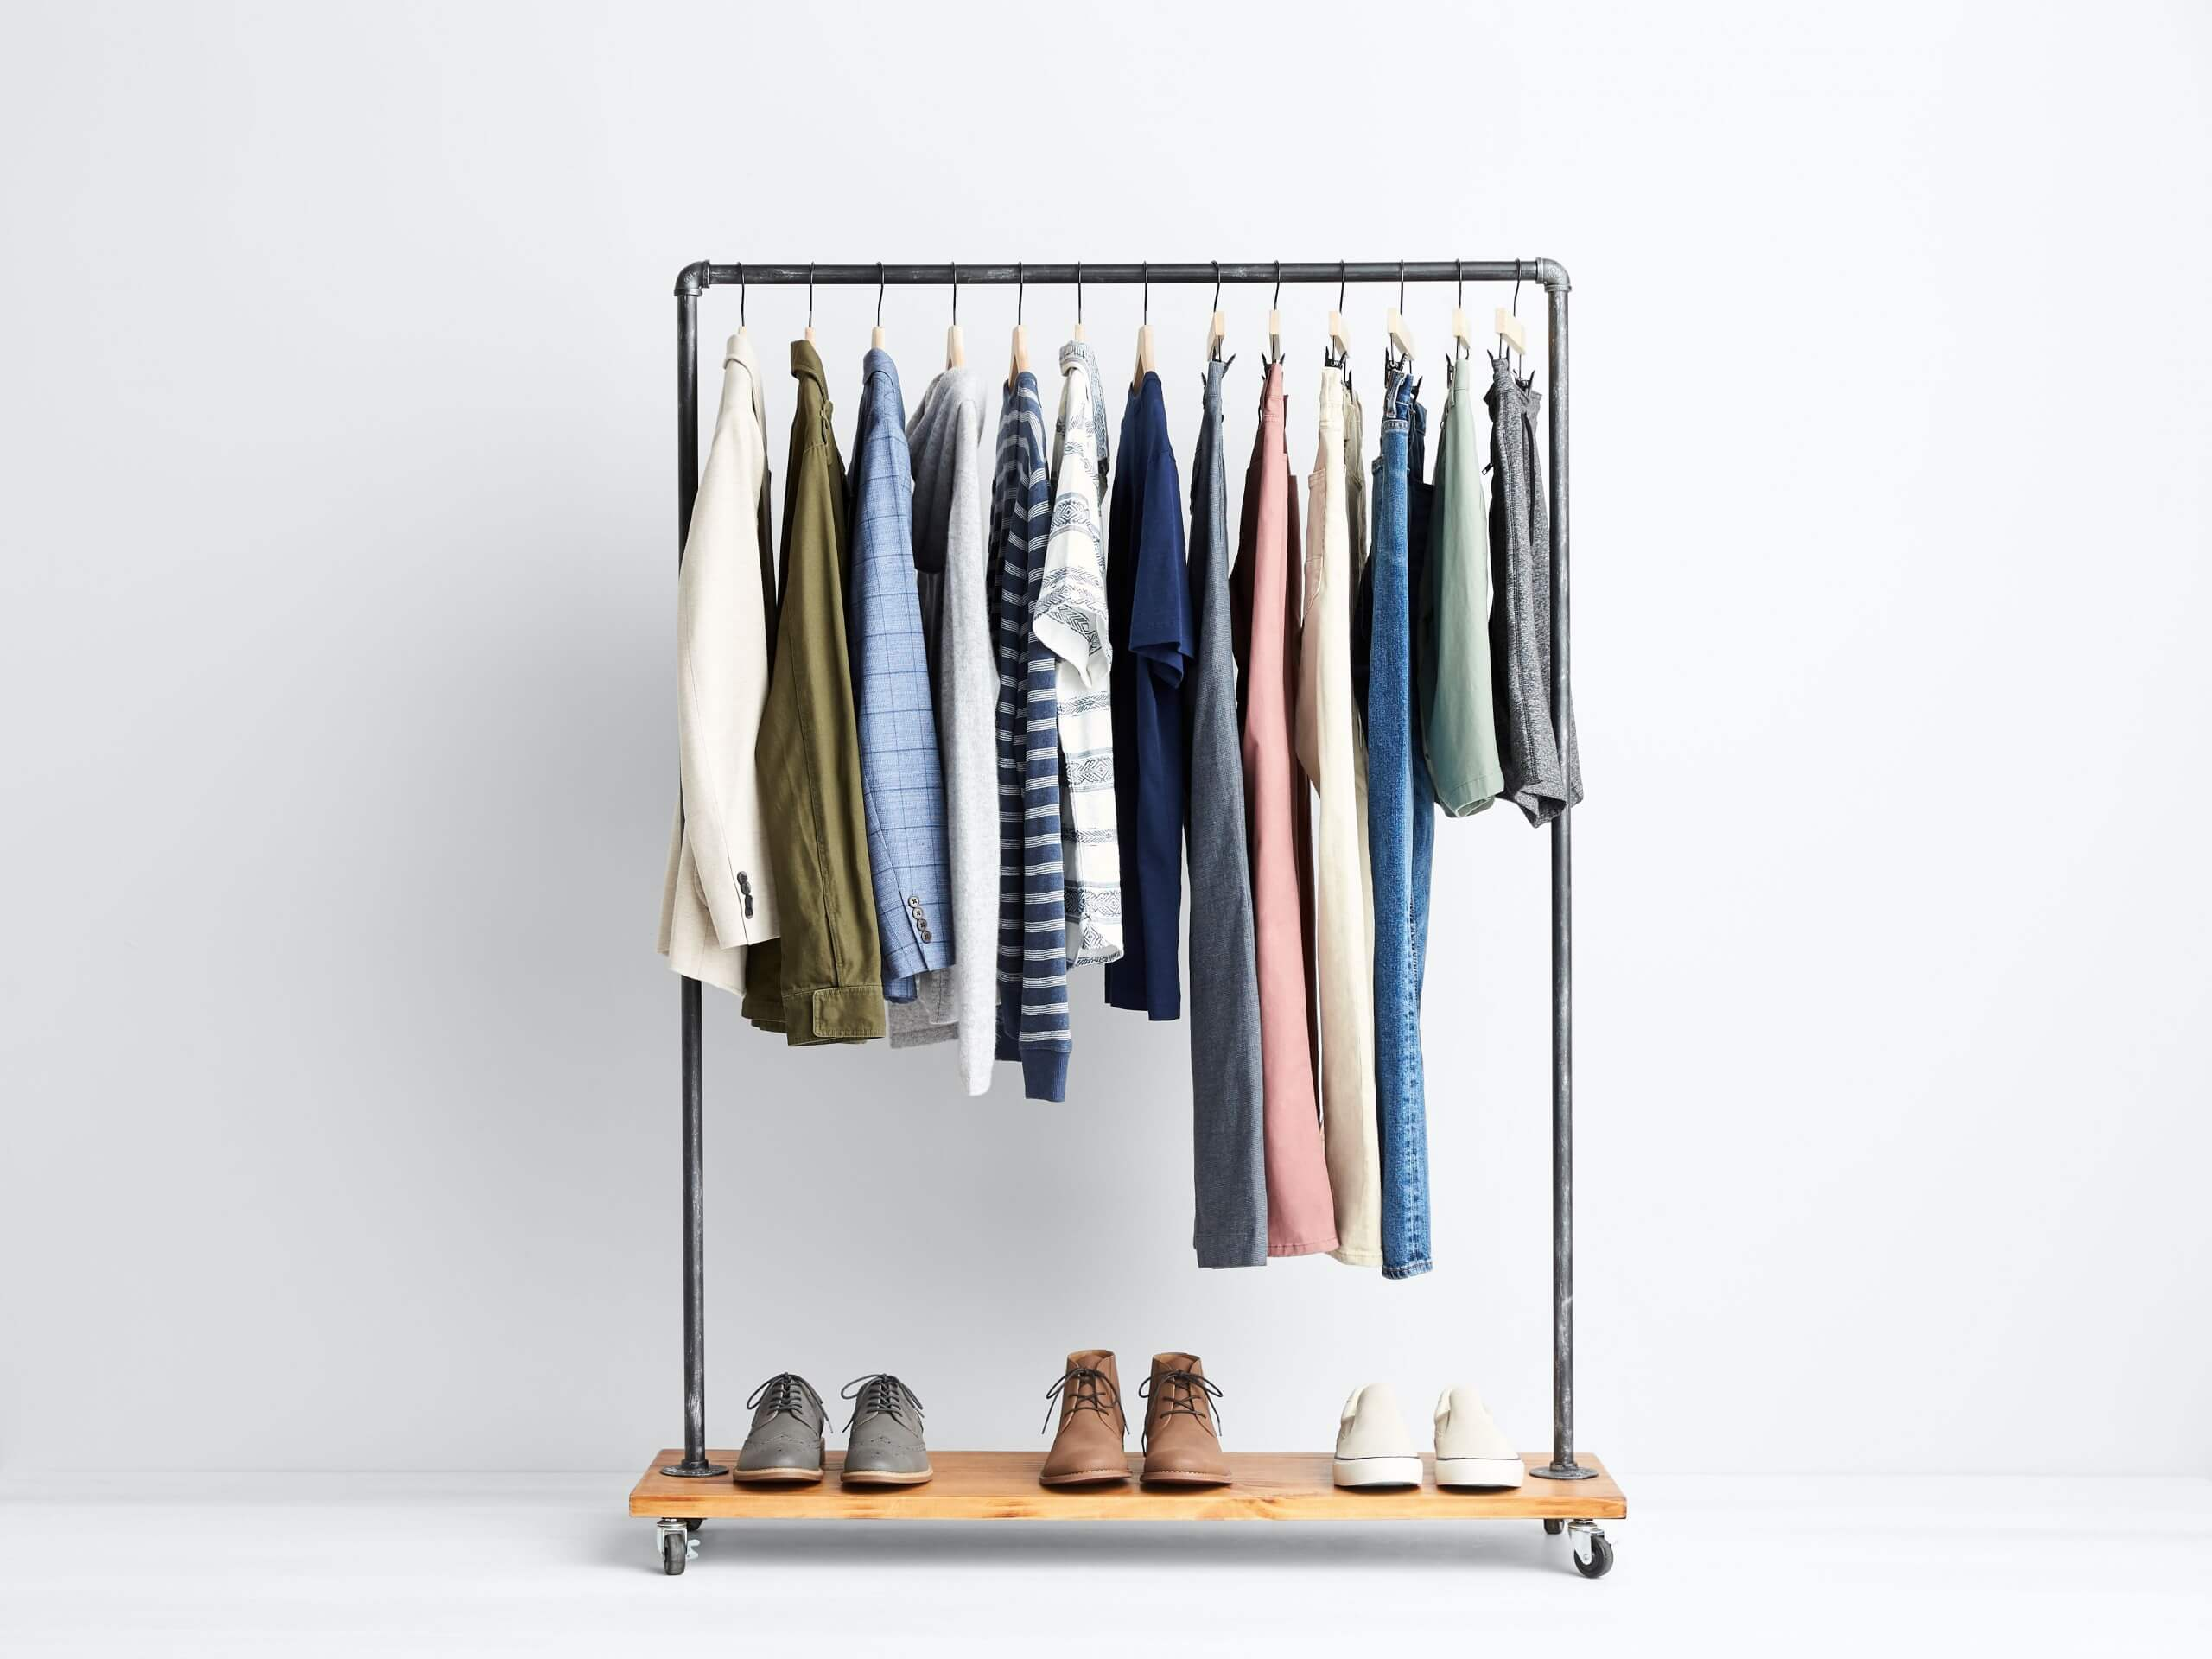 Stitch Fix Men's rack image featuring beige blazer, green military jacket, blue button-down shirt, grey hoodie, striped shirts, navy polo, grey pants, pink pants, khaki pants, blue jeans, green shorts and grey shorts hanging above grey sneakers, brown chukkas and white sneakers.